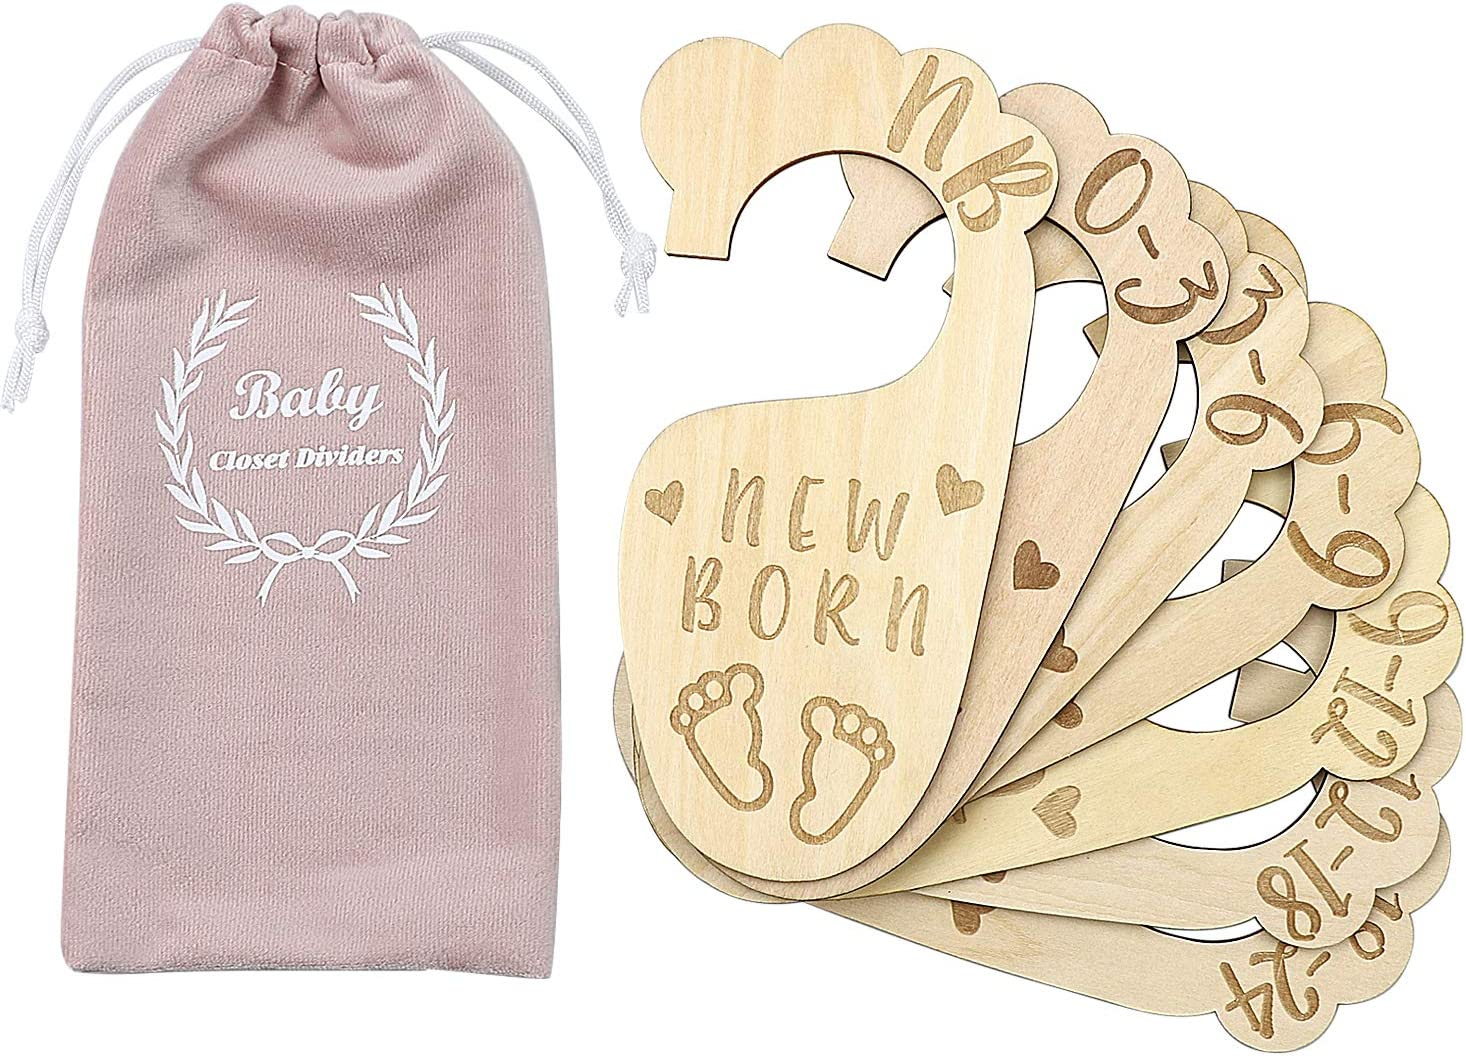 Premium Wood Baby Closet Dividers,Set of 7,from Newborn to 24 Month,Baby Closet Organizers,Nursery Decor,Baby Clothes Organizers (Style-2)